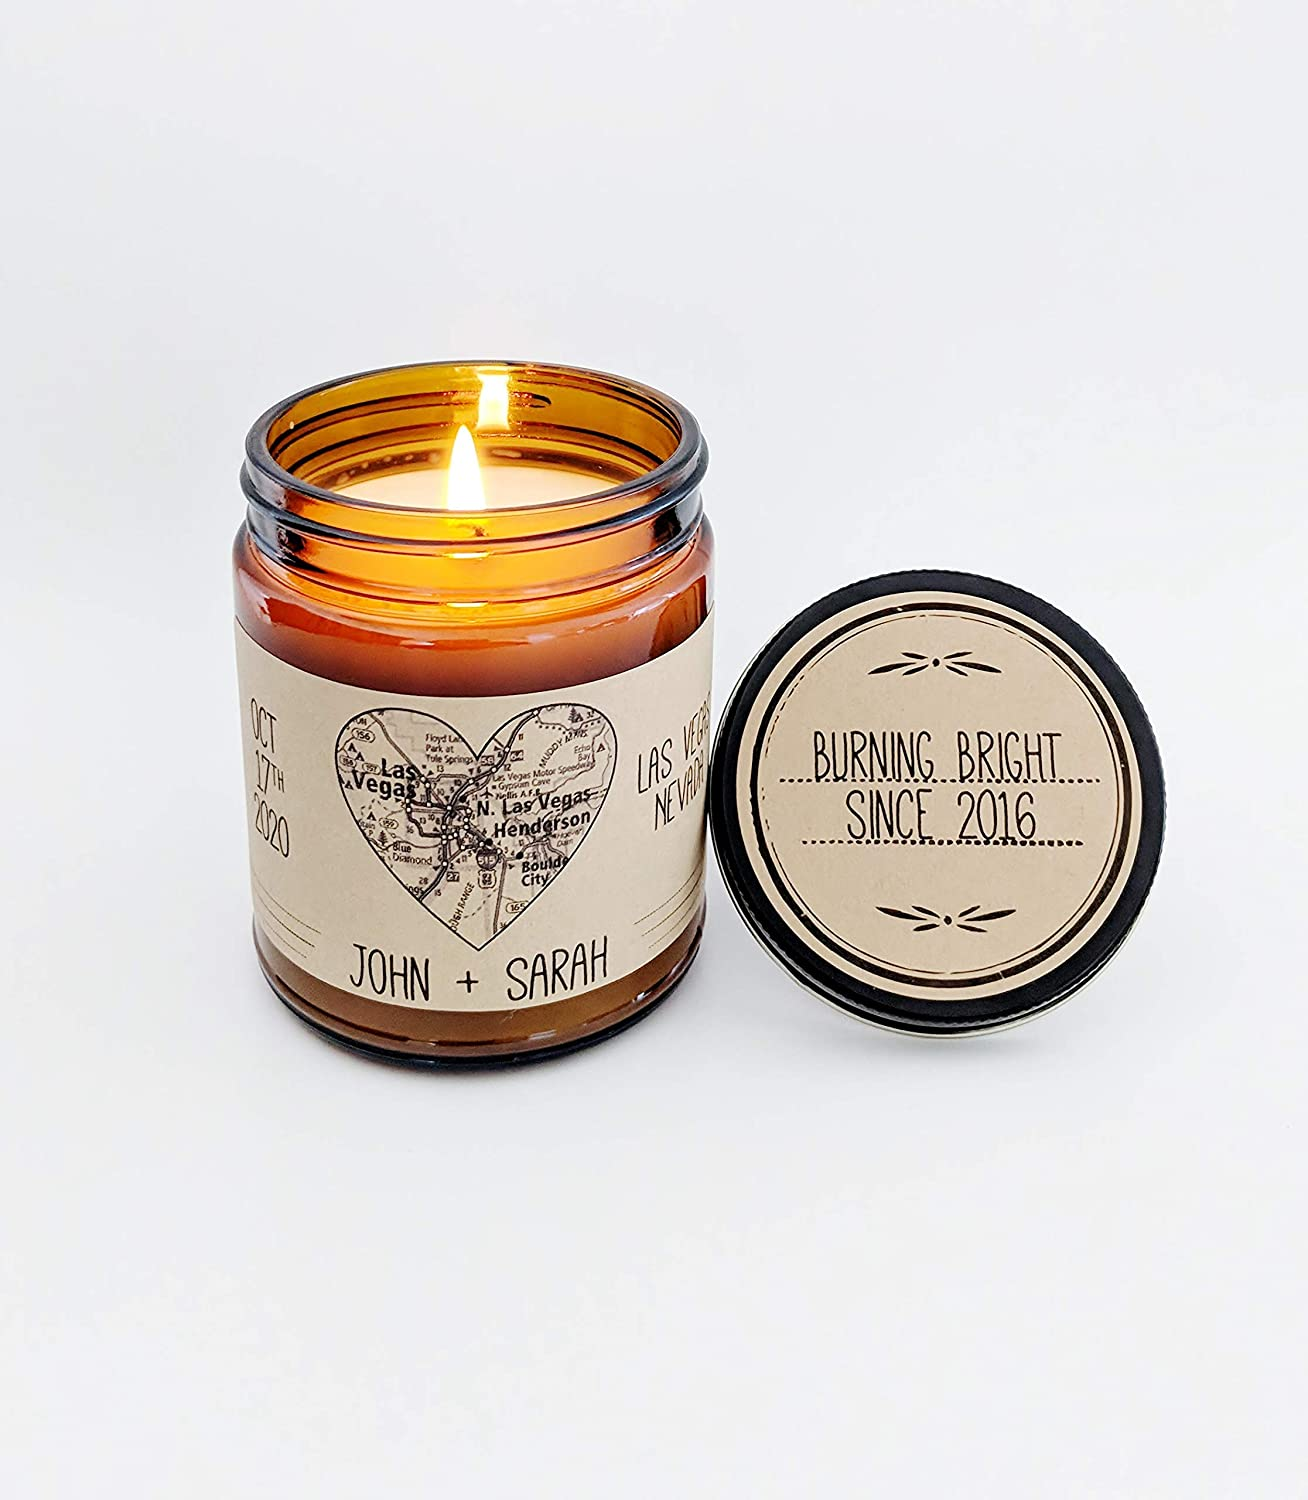 This is an image of a personalized handmade scented candle in a jar for couples.